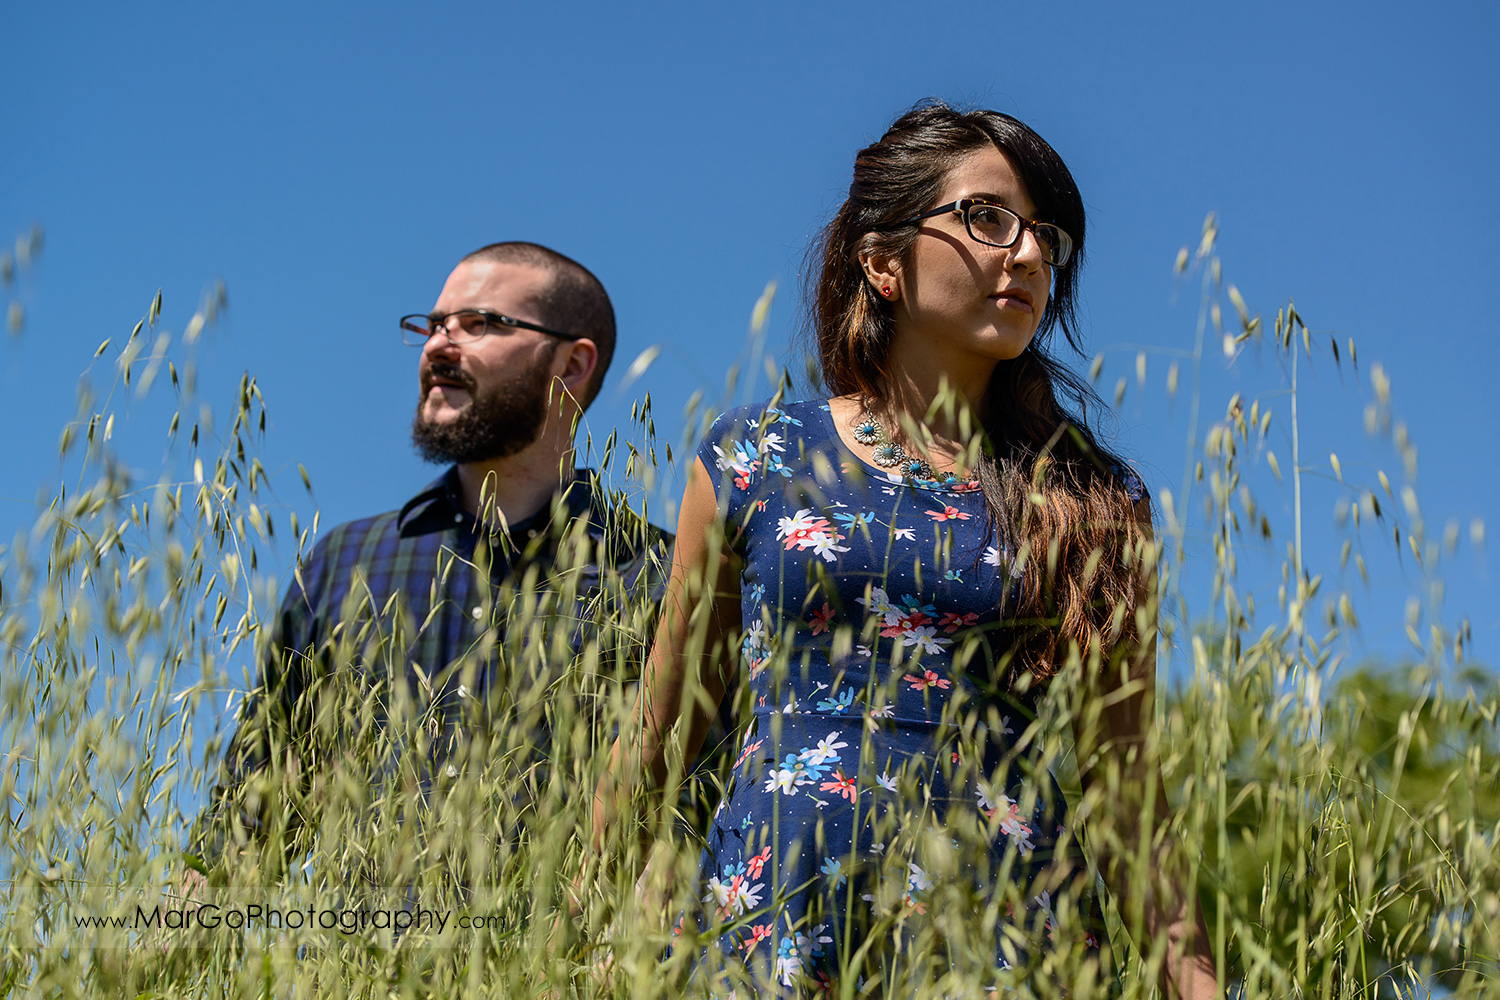 woman in blue dress and man in blue shirt walking in the grass during engagement session at Sunol Regional Wilderness